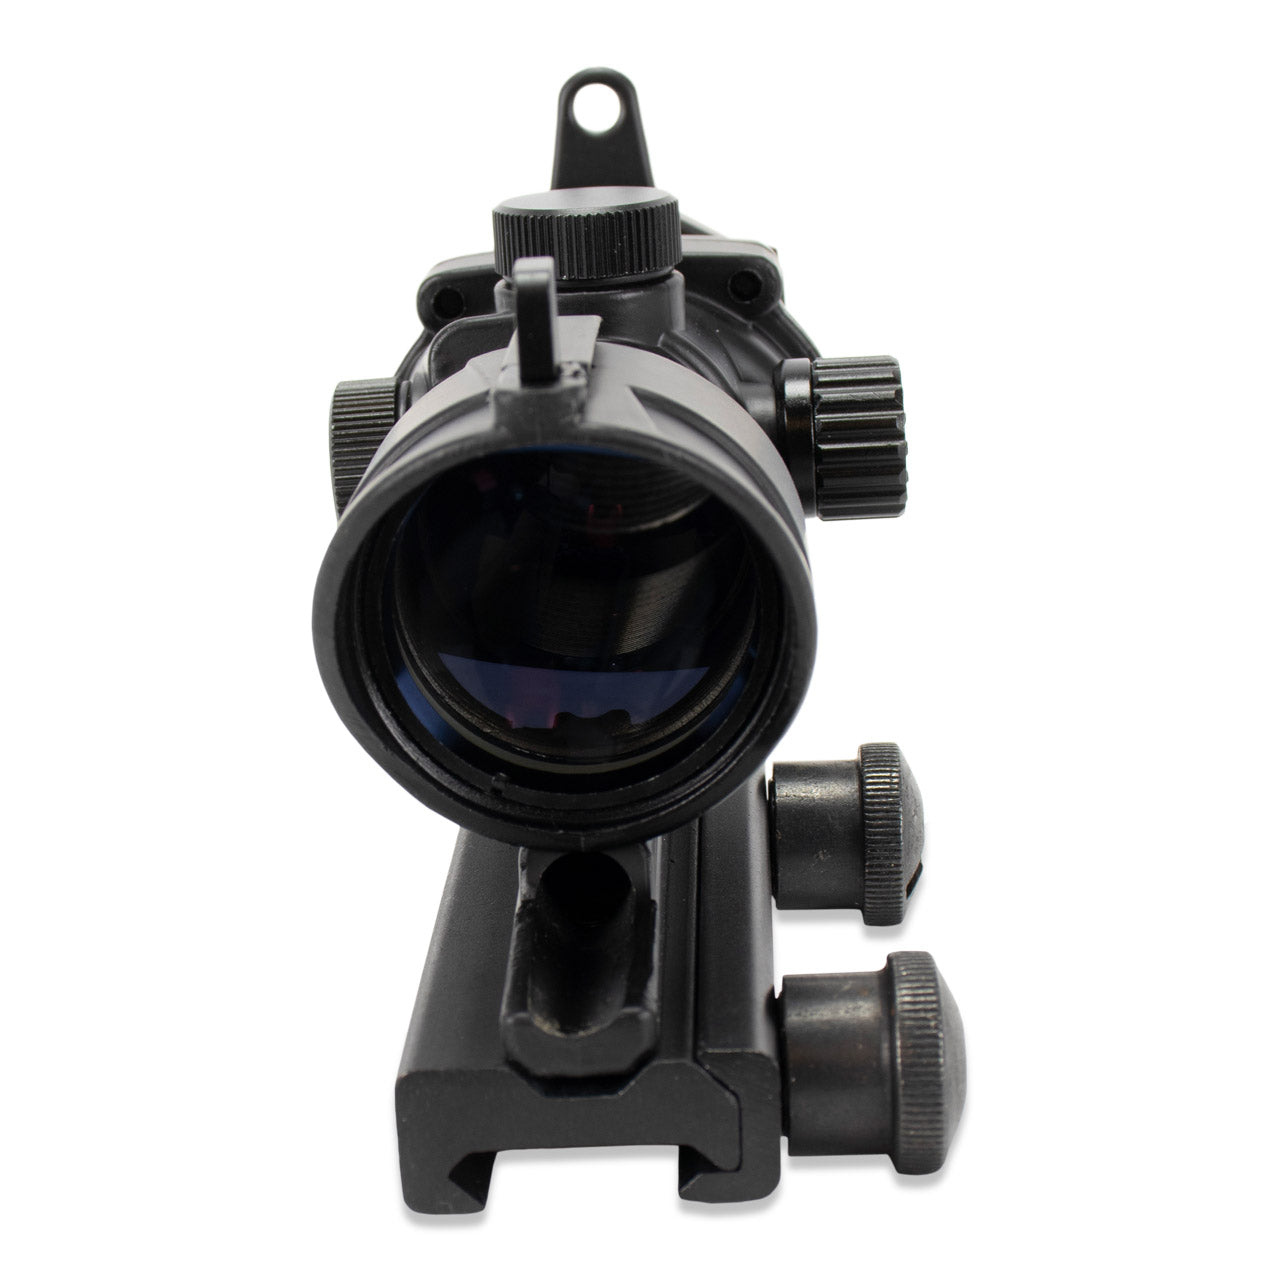 Element Illuminated Red & Green Dot Non-Magnified 4x32 Scope with Iron Sights for Airsoft